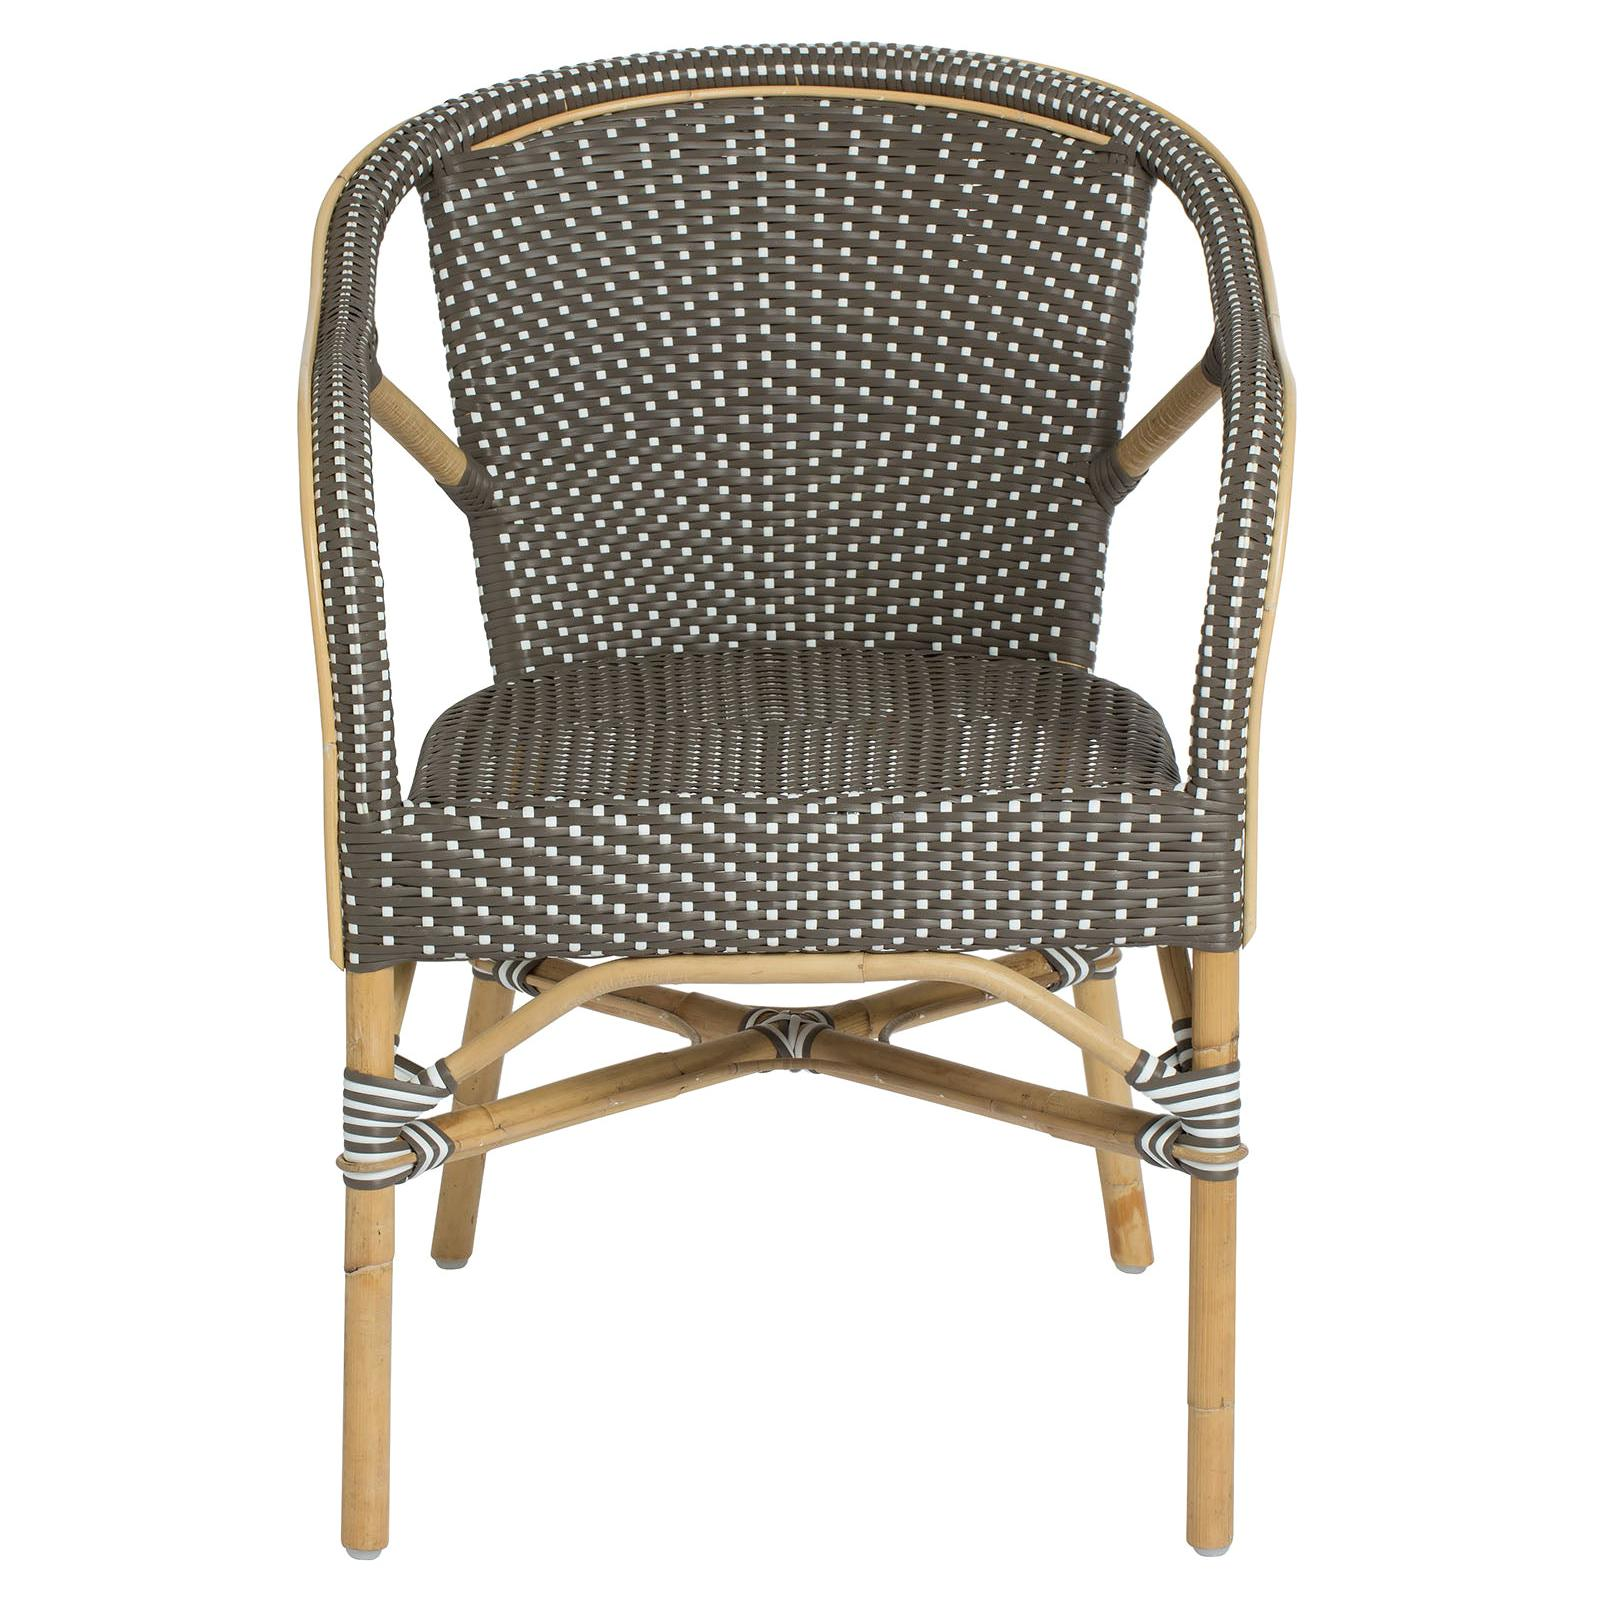 Sika Design Madeleine Woven Rattan Bistro Armchair in Cappuccino with White Dots